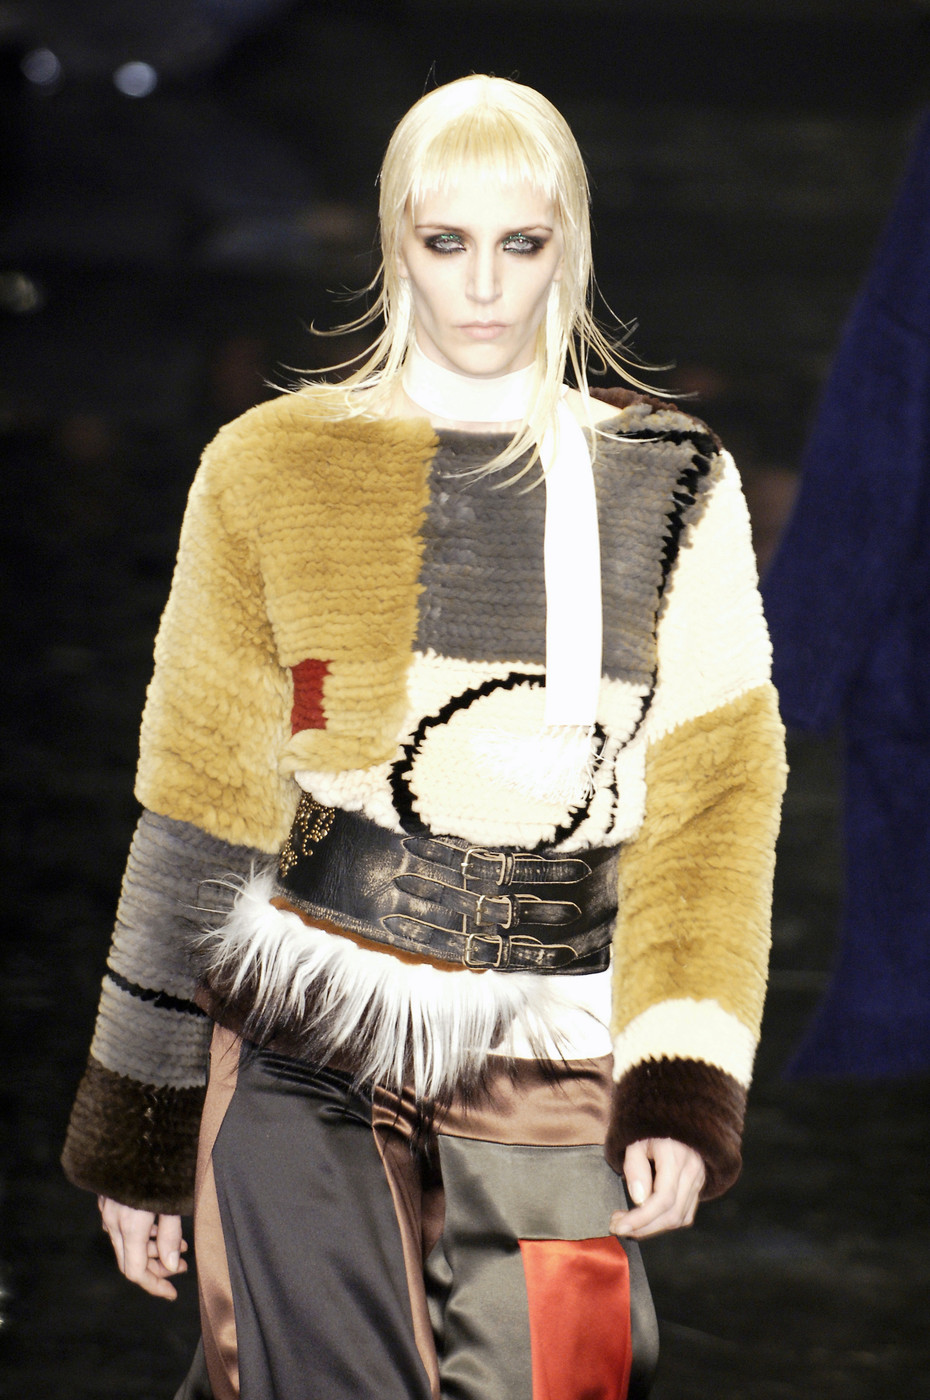 1000 images about gaultier on pinterest - Mademoiselle jean paul gaultier ...